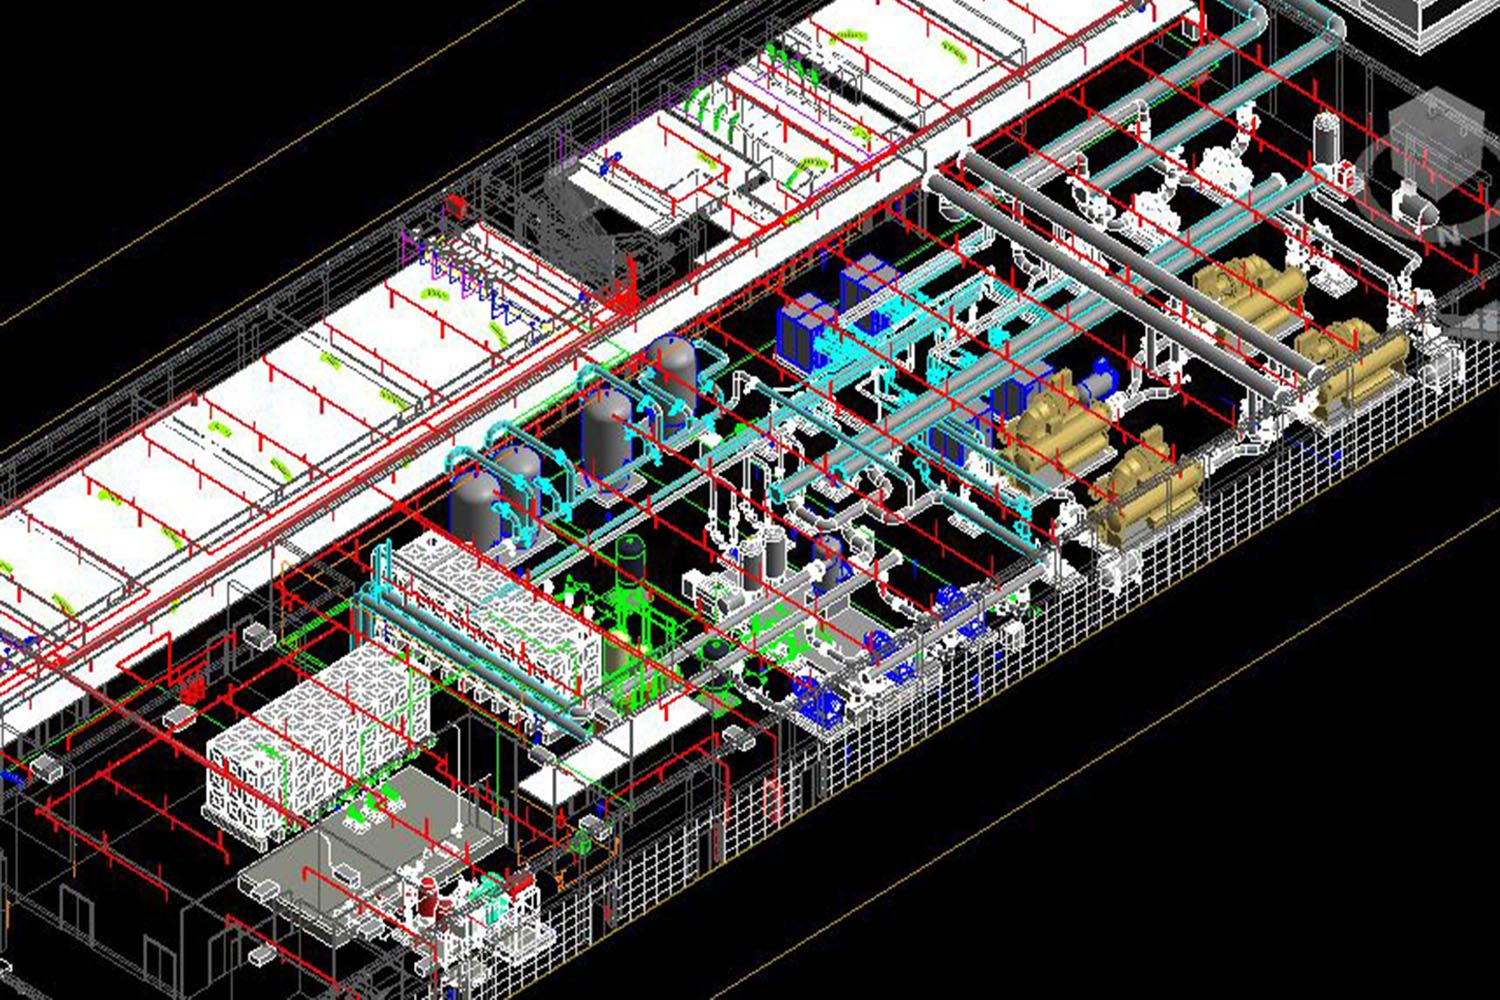 medium resolution of cad outsourcing architecture structural mep civil bim hvac plumbing shop drawing fabrication rebar detailing